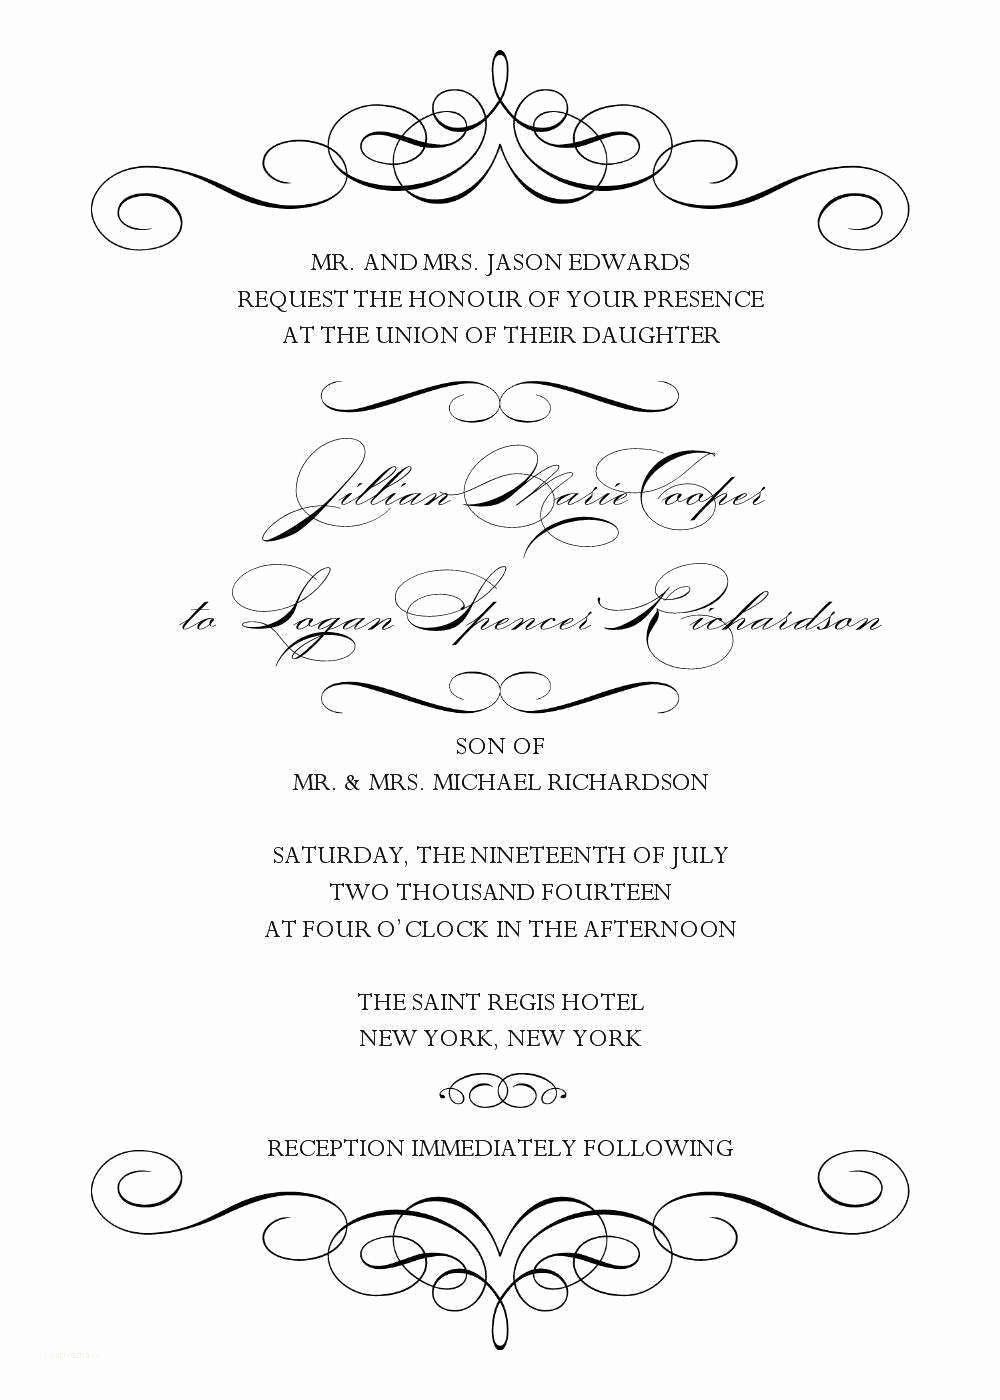 Free Invitation Templates for Word Lovely Blank Wedding Invitation Templates for Microsoft Word